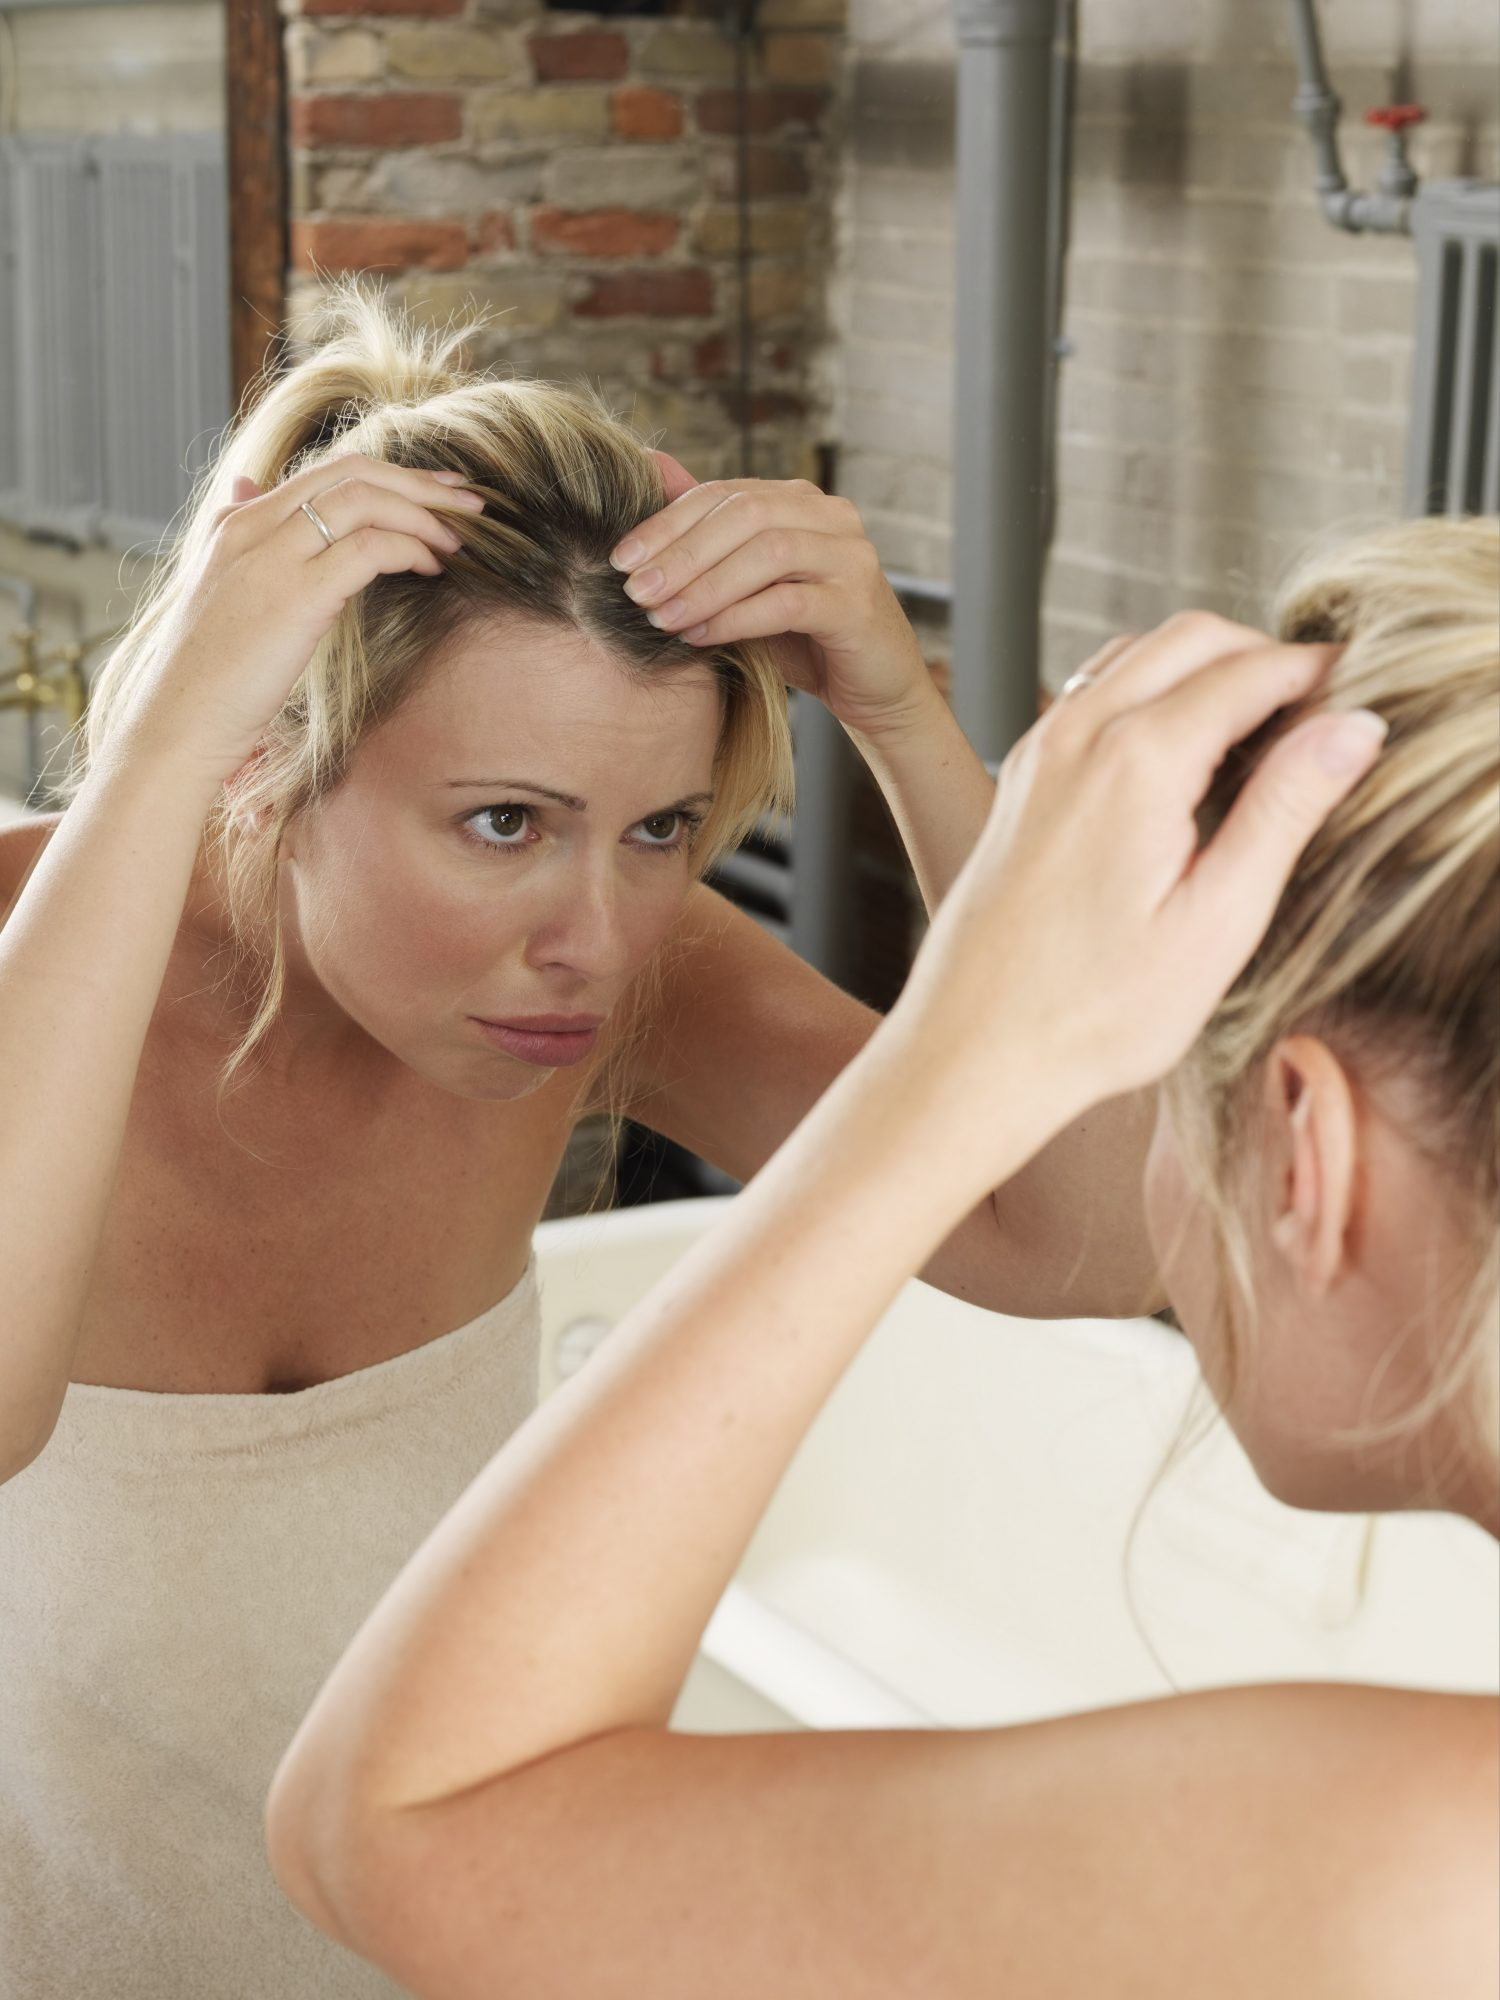 Woman In Bathroom Looking In Mirror at Hair Roots